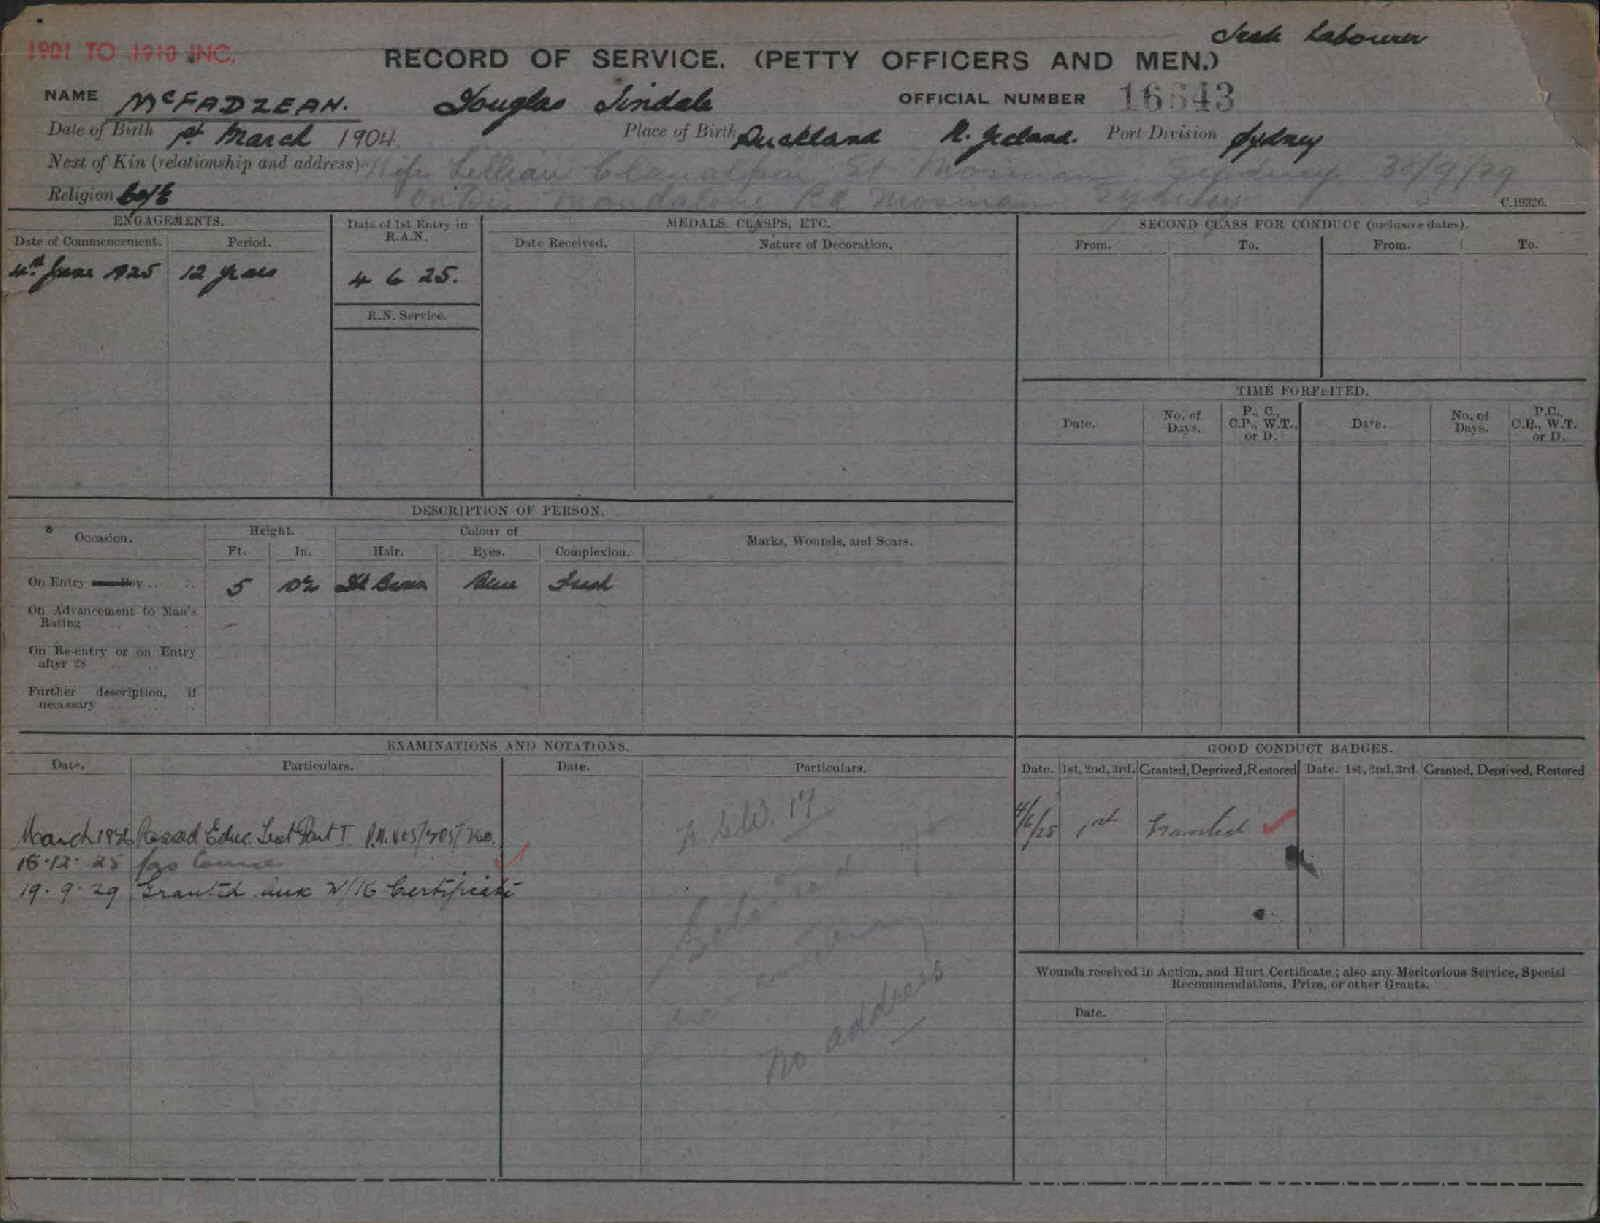 MCFADZEAN DOUGLAS TINDALE : Service Number - 16643 : Date of birth - 01 Mar 1904 : Place of birth - AUCKLAND N ZEALAND : Place of enlistment - SYDNEY : Next of Kin - LILLIAN